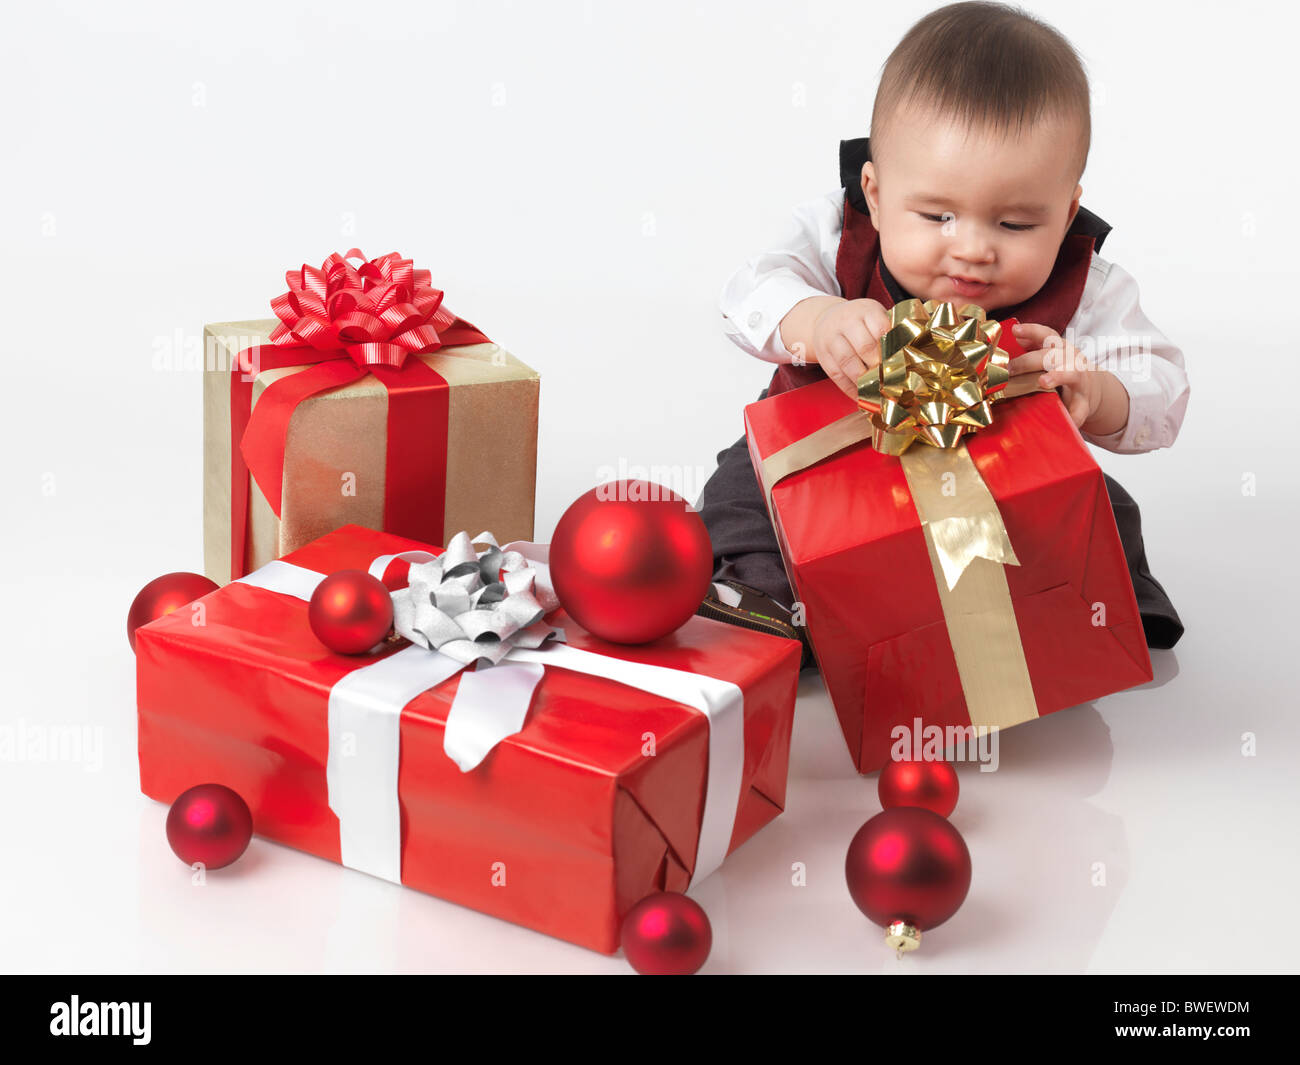 Six month old baby boy opening Christmas presents. Isolated on white background. - Stock Image